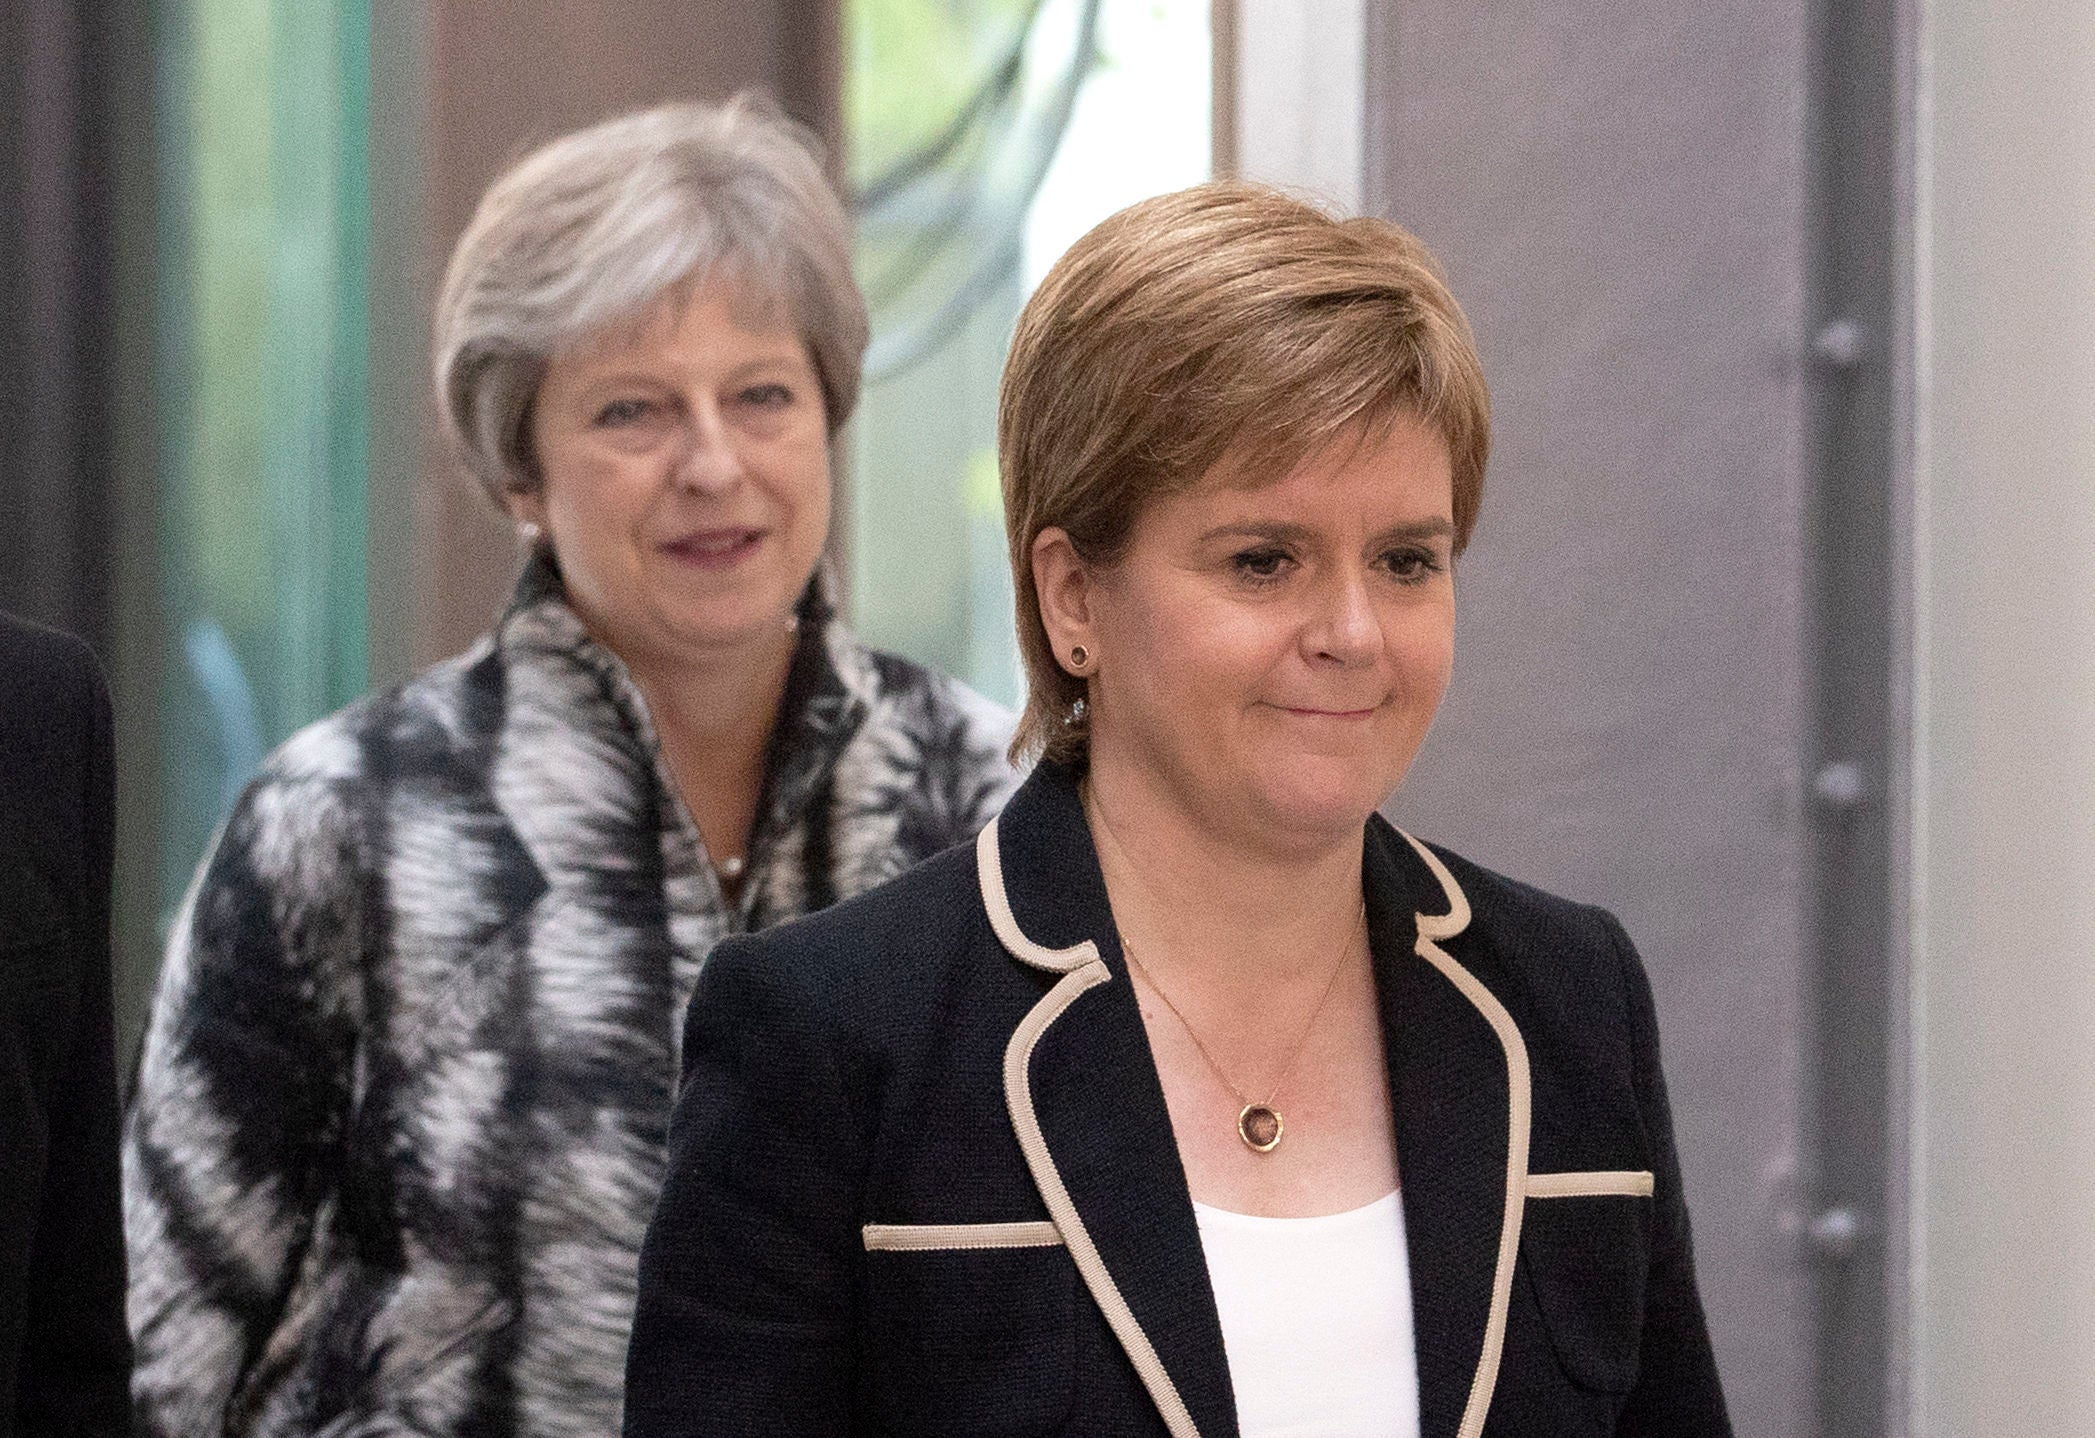 Scotland needs to take back control of immigration policy from Theresa May